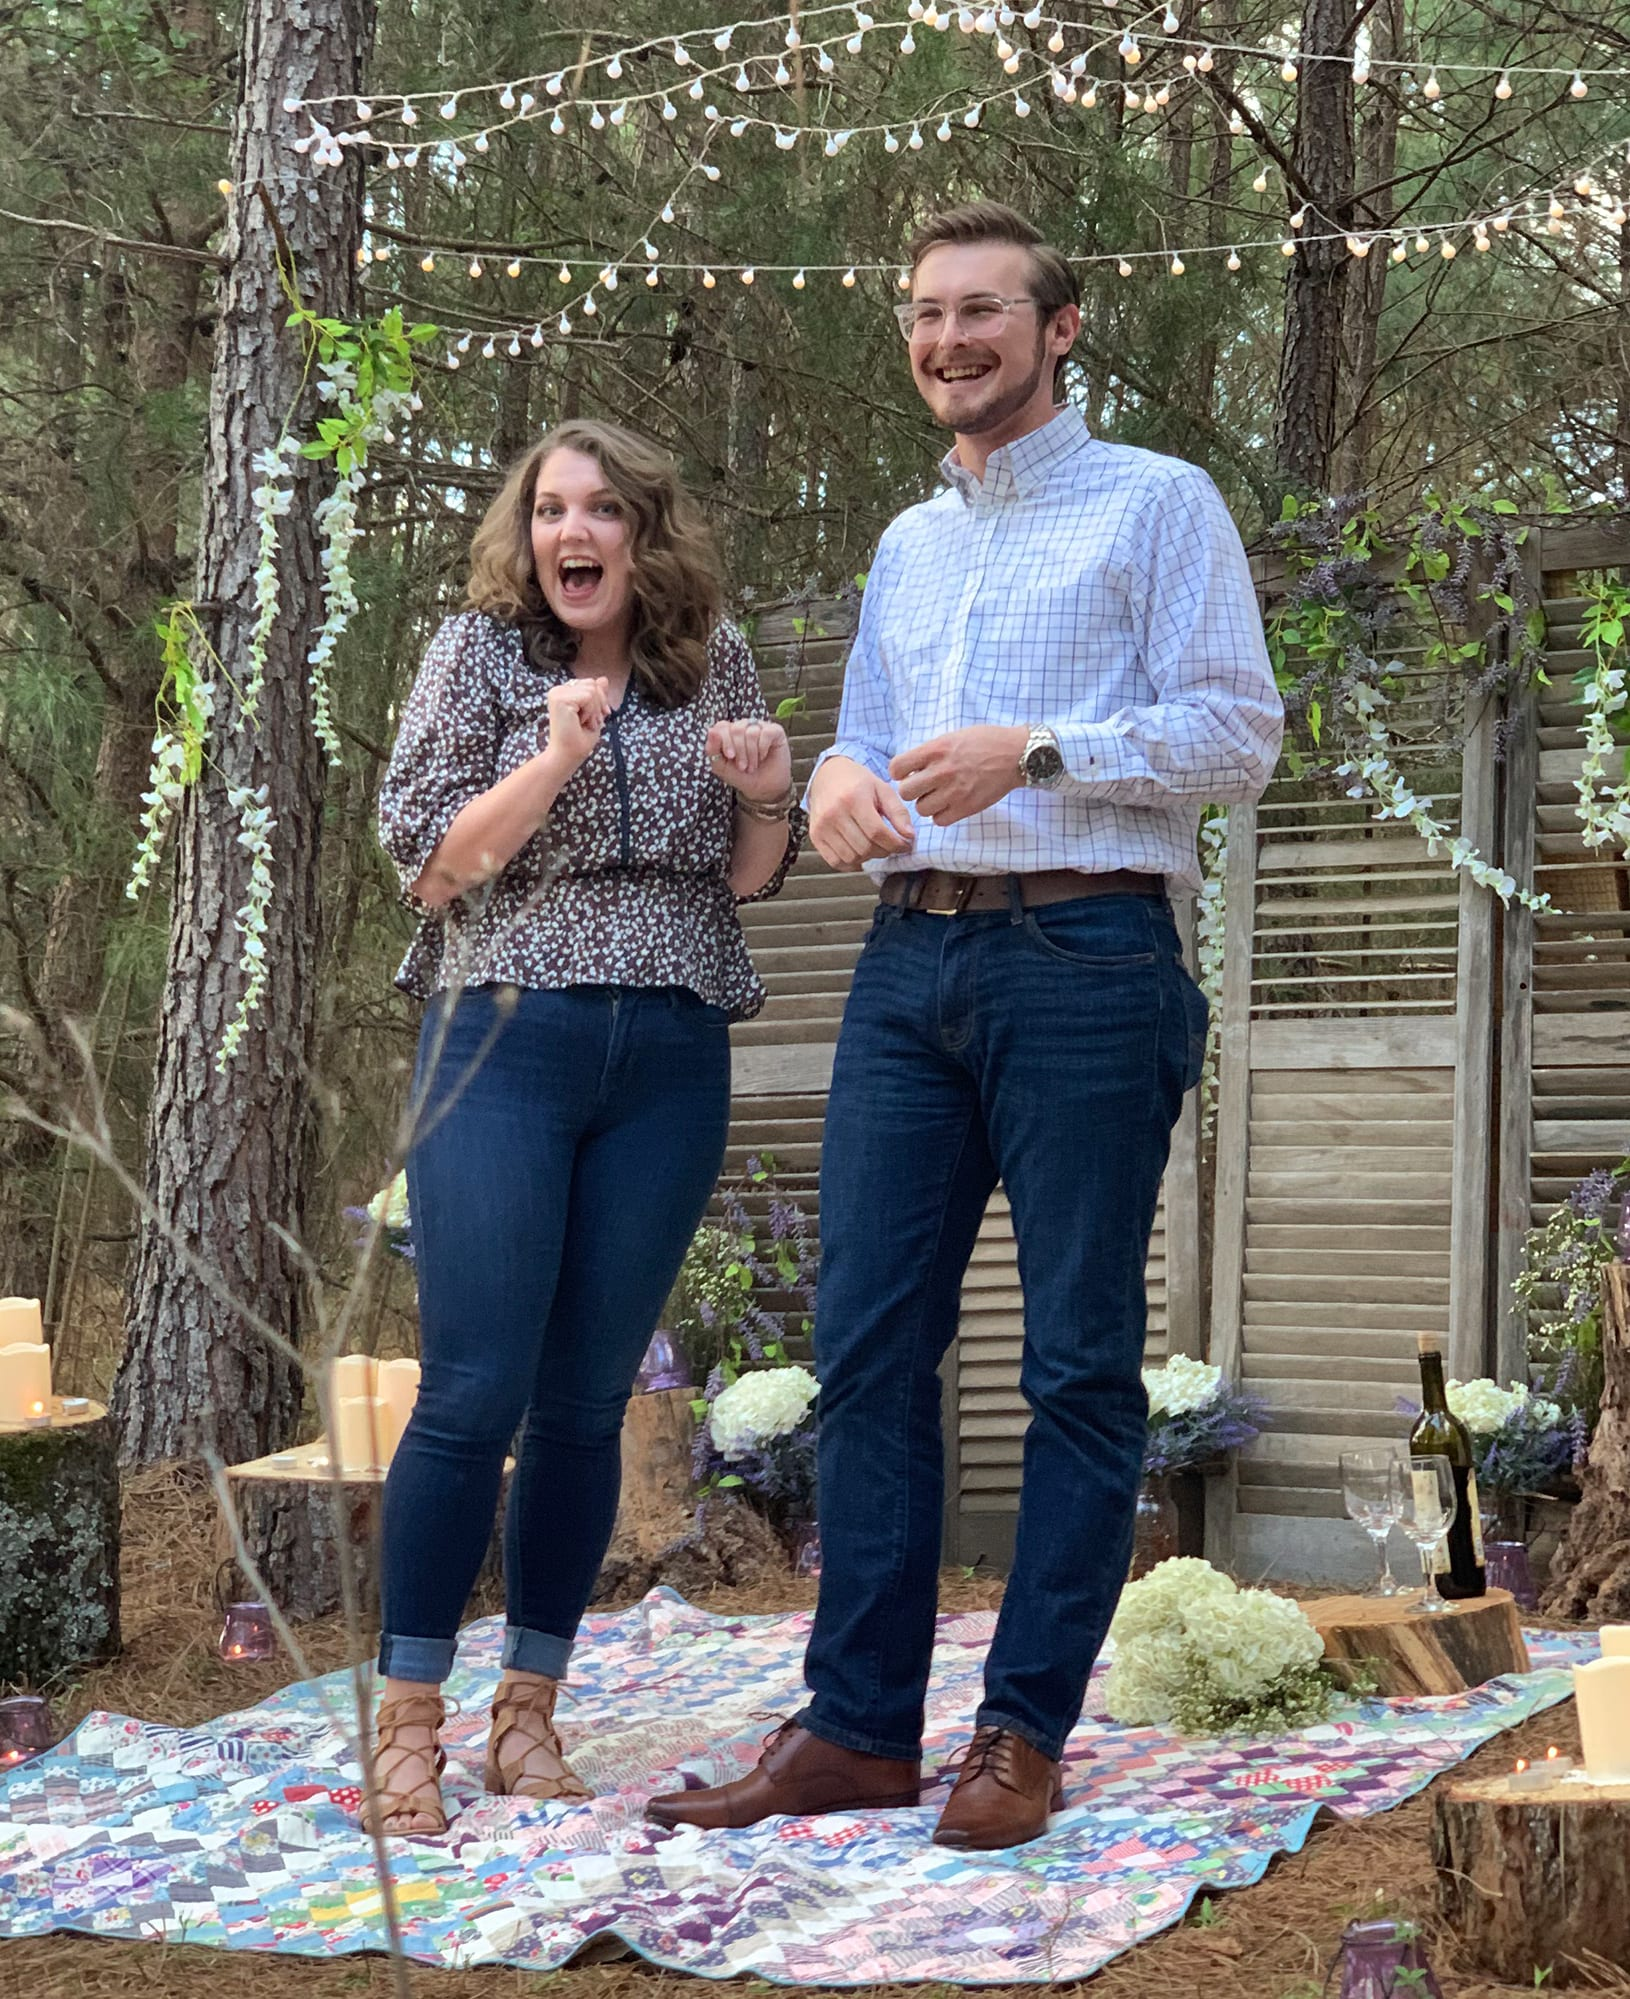 Nick and Cassie after getting engaged